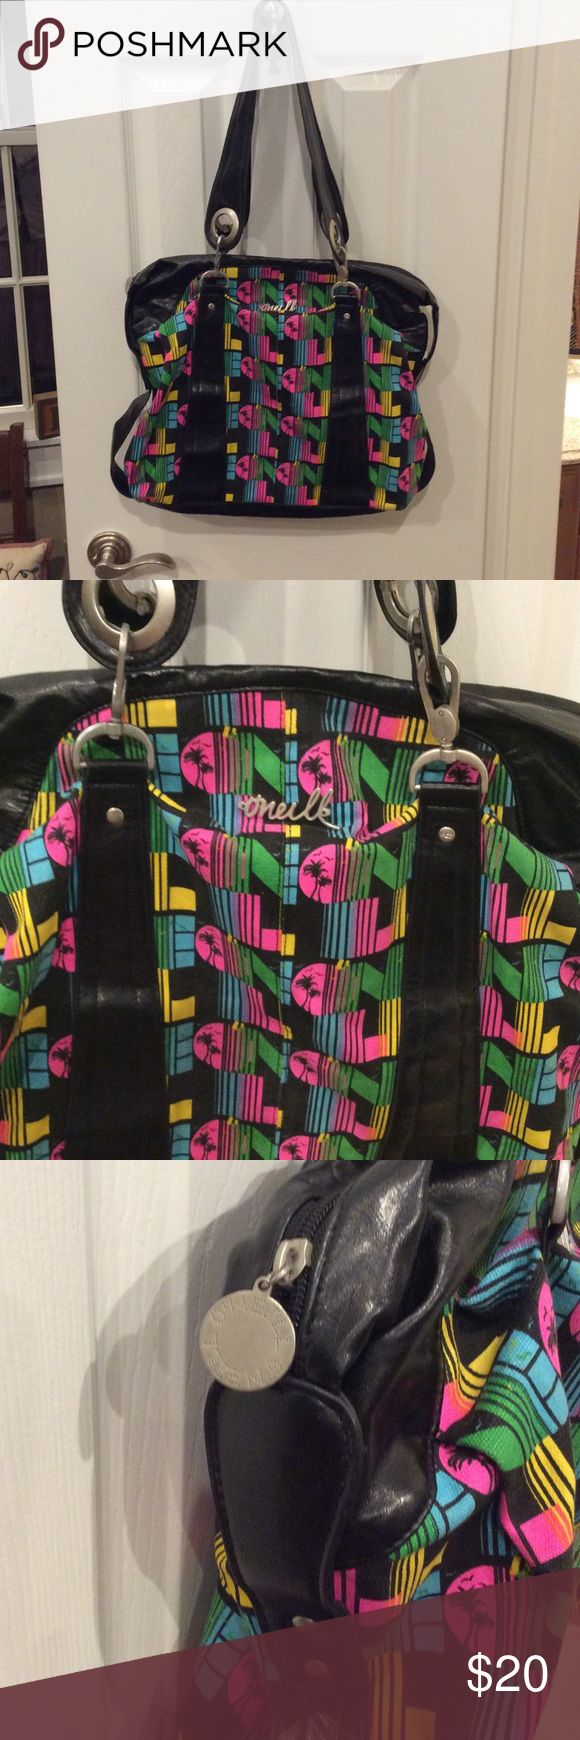 O'Neill tote bag Large black tote with neon palm tree design throughout. Some marks but otherwise good condition.zipper closure heavy duty brushed silver buckles. O'Neill Bags Totes